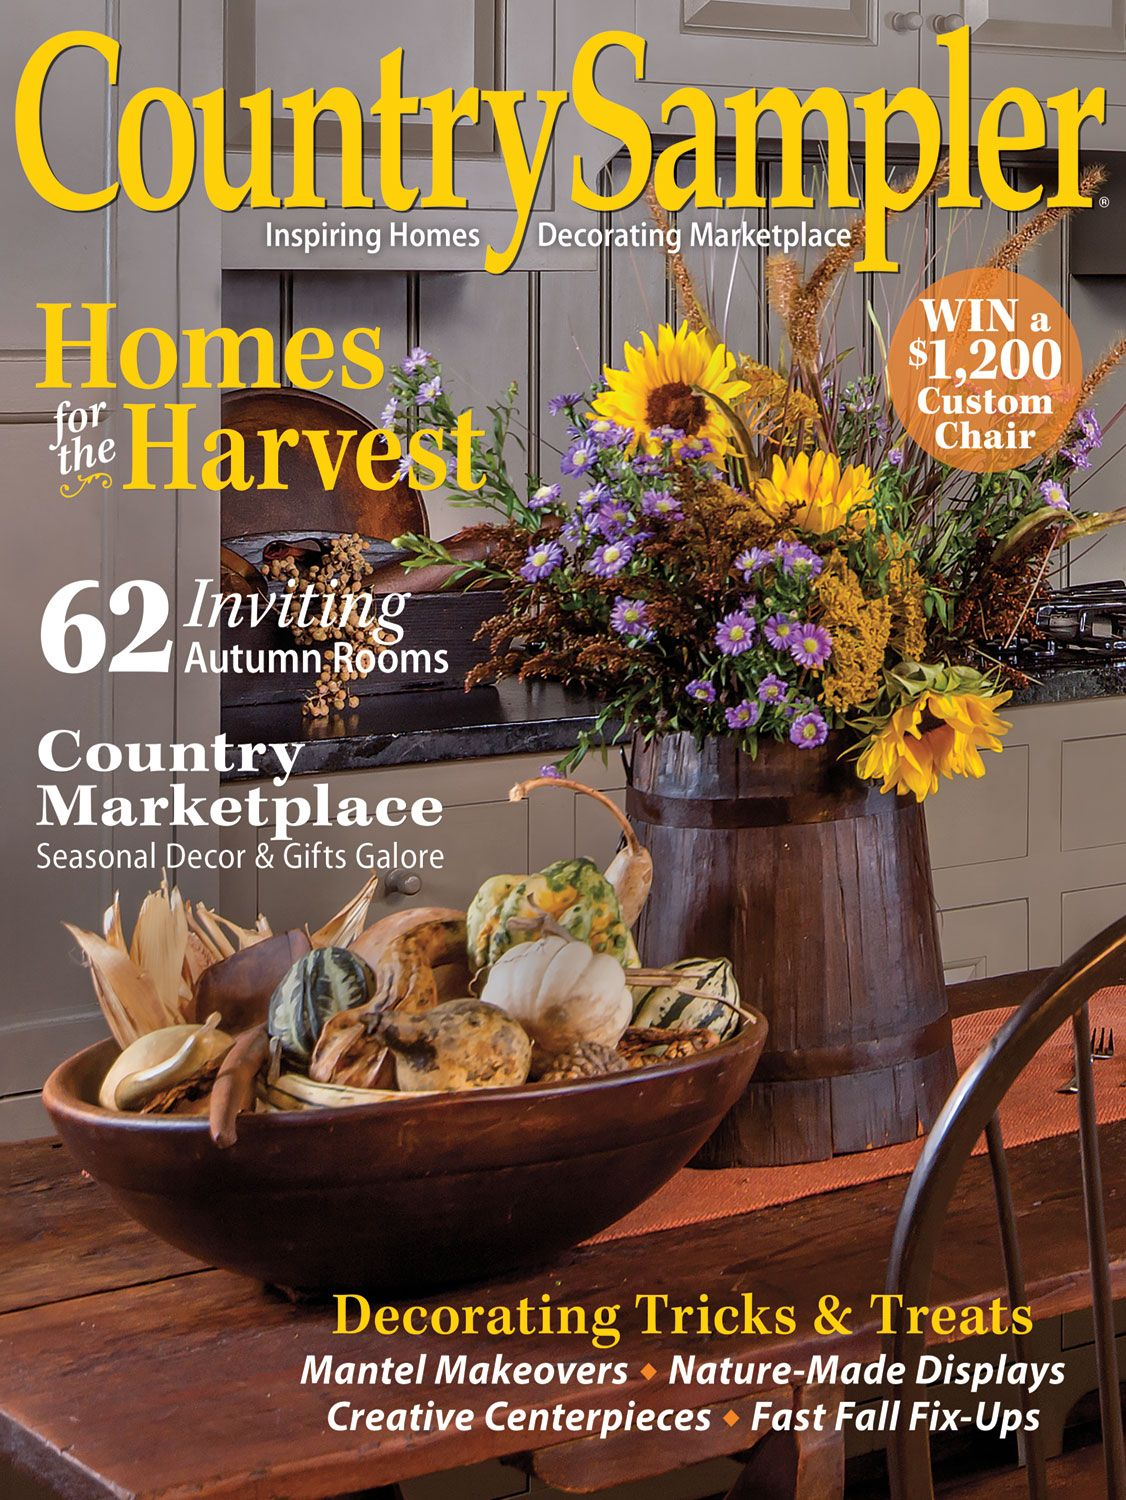 September Decorating Ideas Interesting Our September Issue Is Chockfull Of Great Fall Decorating Ideas . Decorating Inspiration